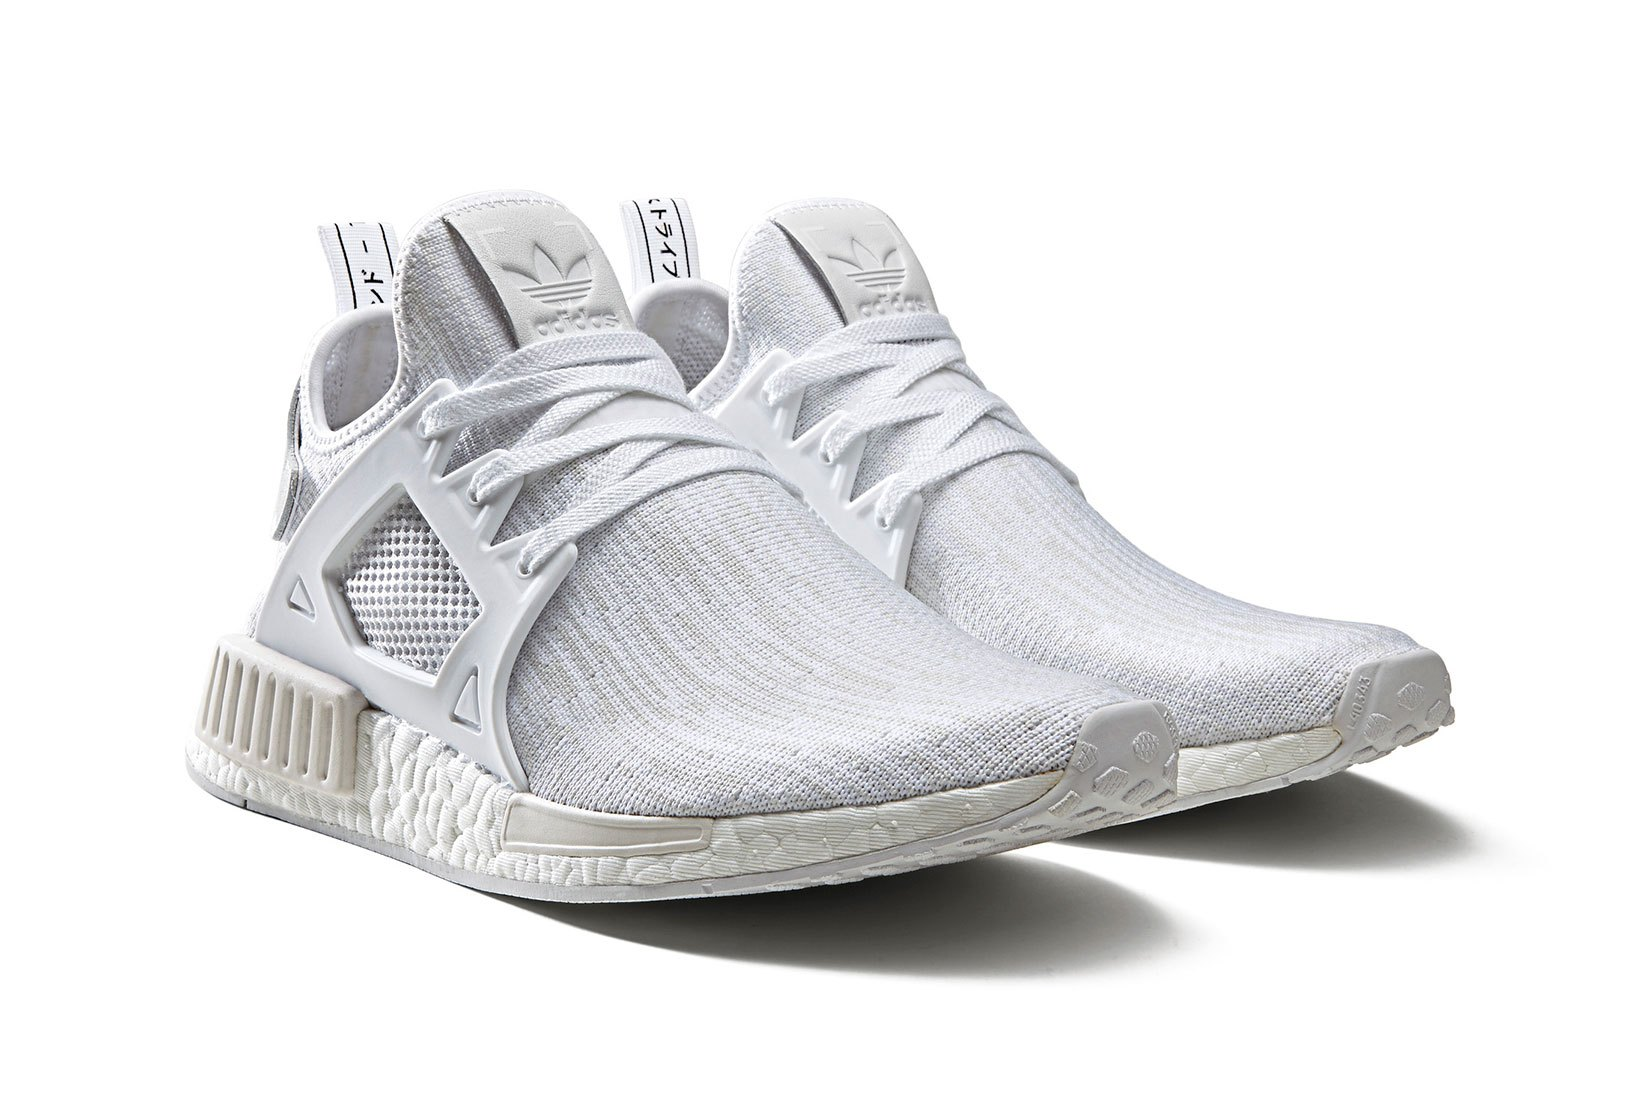 7bf75a2cd6aea Adidas Nmd Xr1 Pk Triple White kenmore-cleaning.co.uk